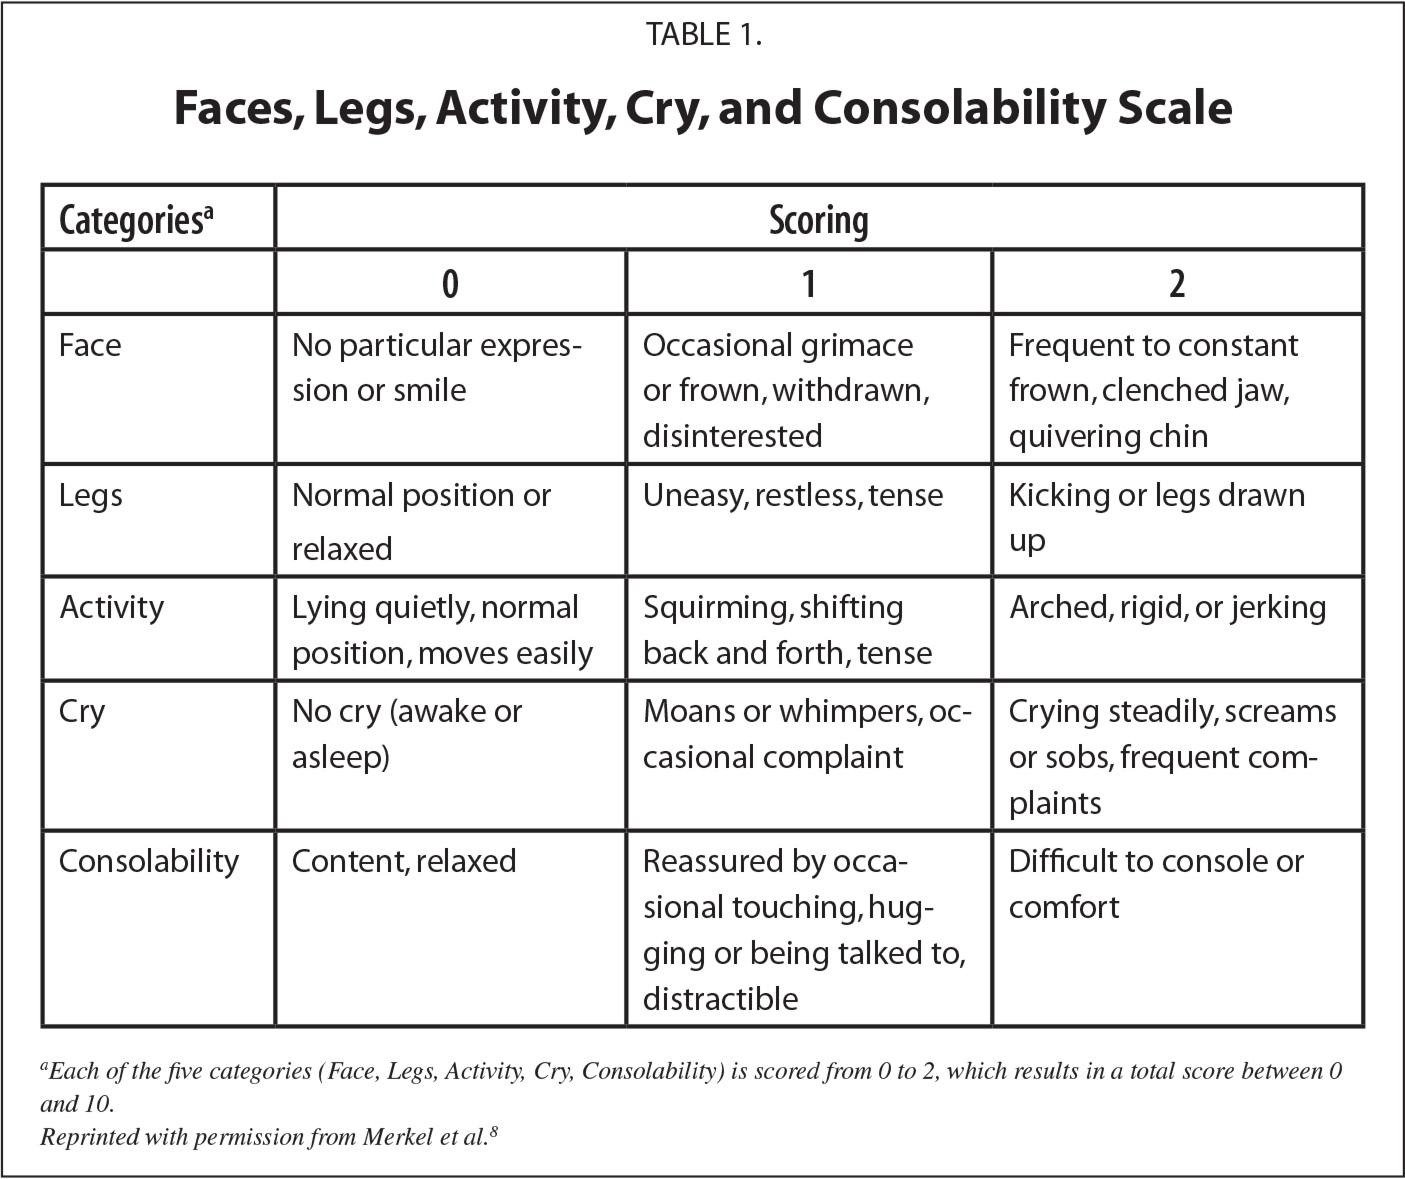 Faces, Legs, Activity, Cry, and Consolability Scale